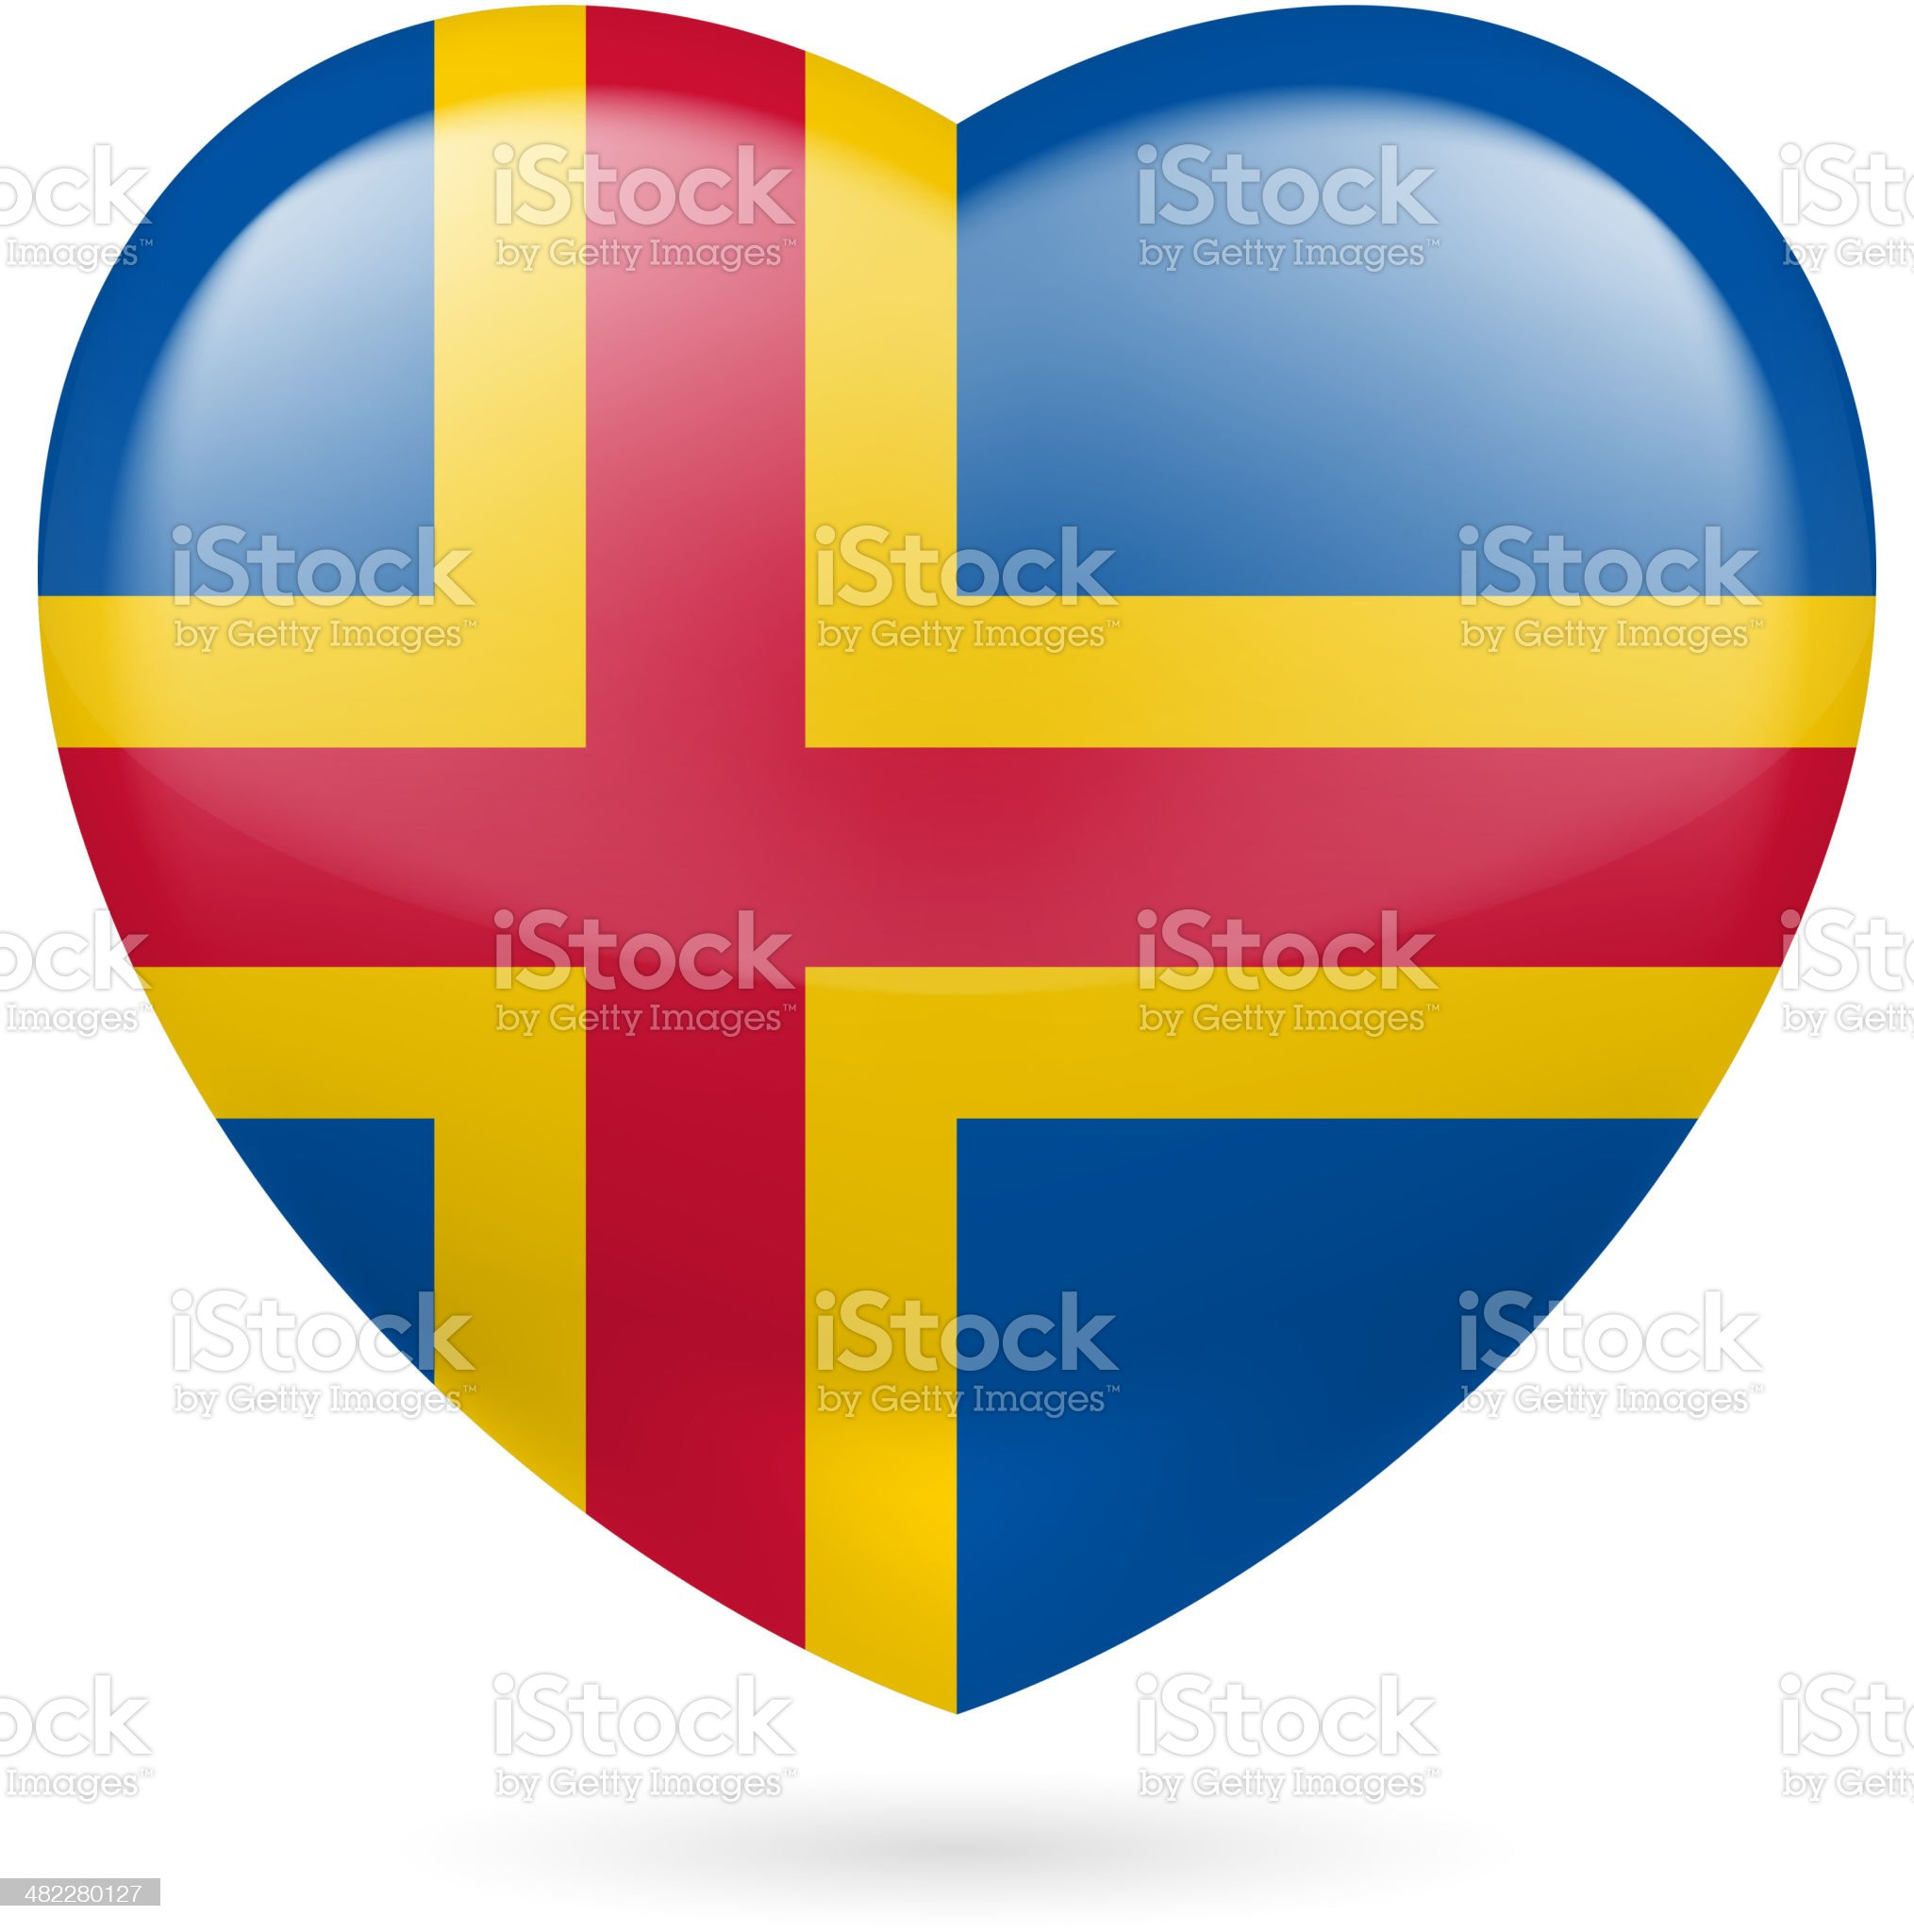 Heart icon of Aland Islands royalty-free stock vector art